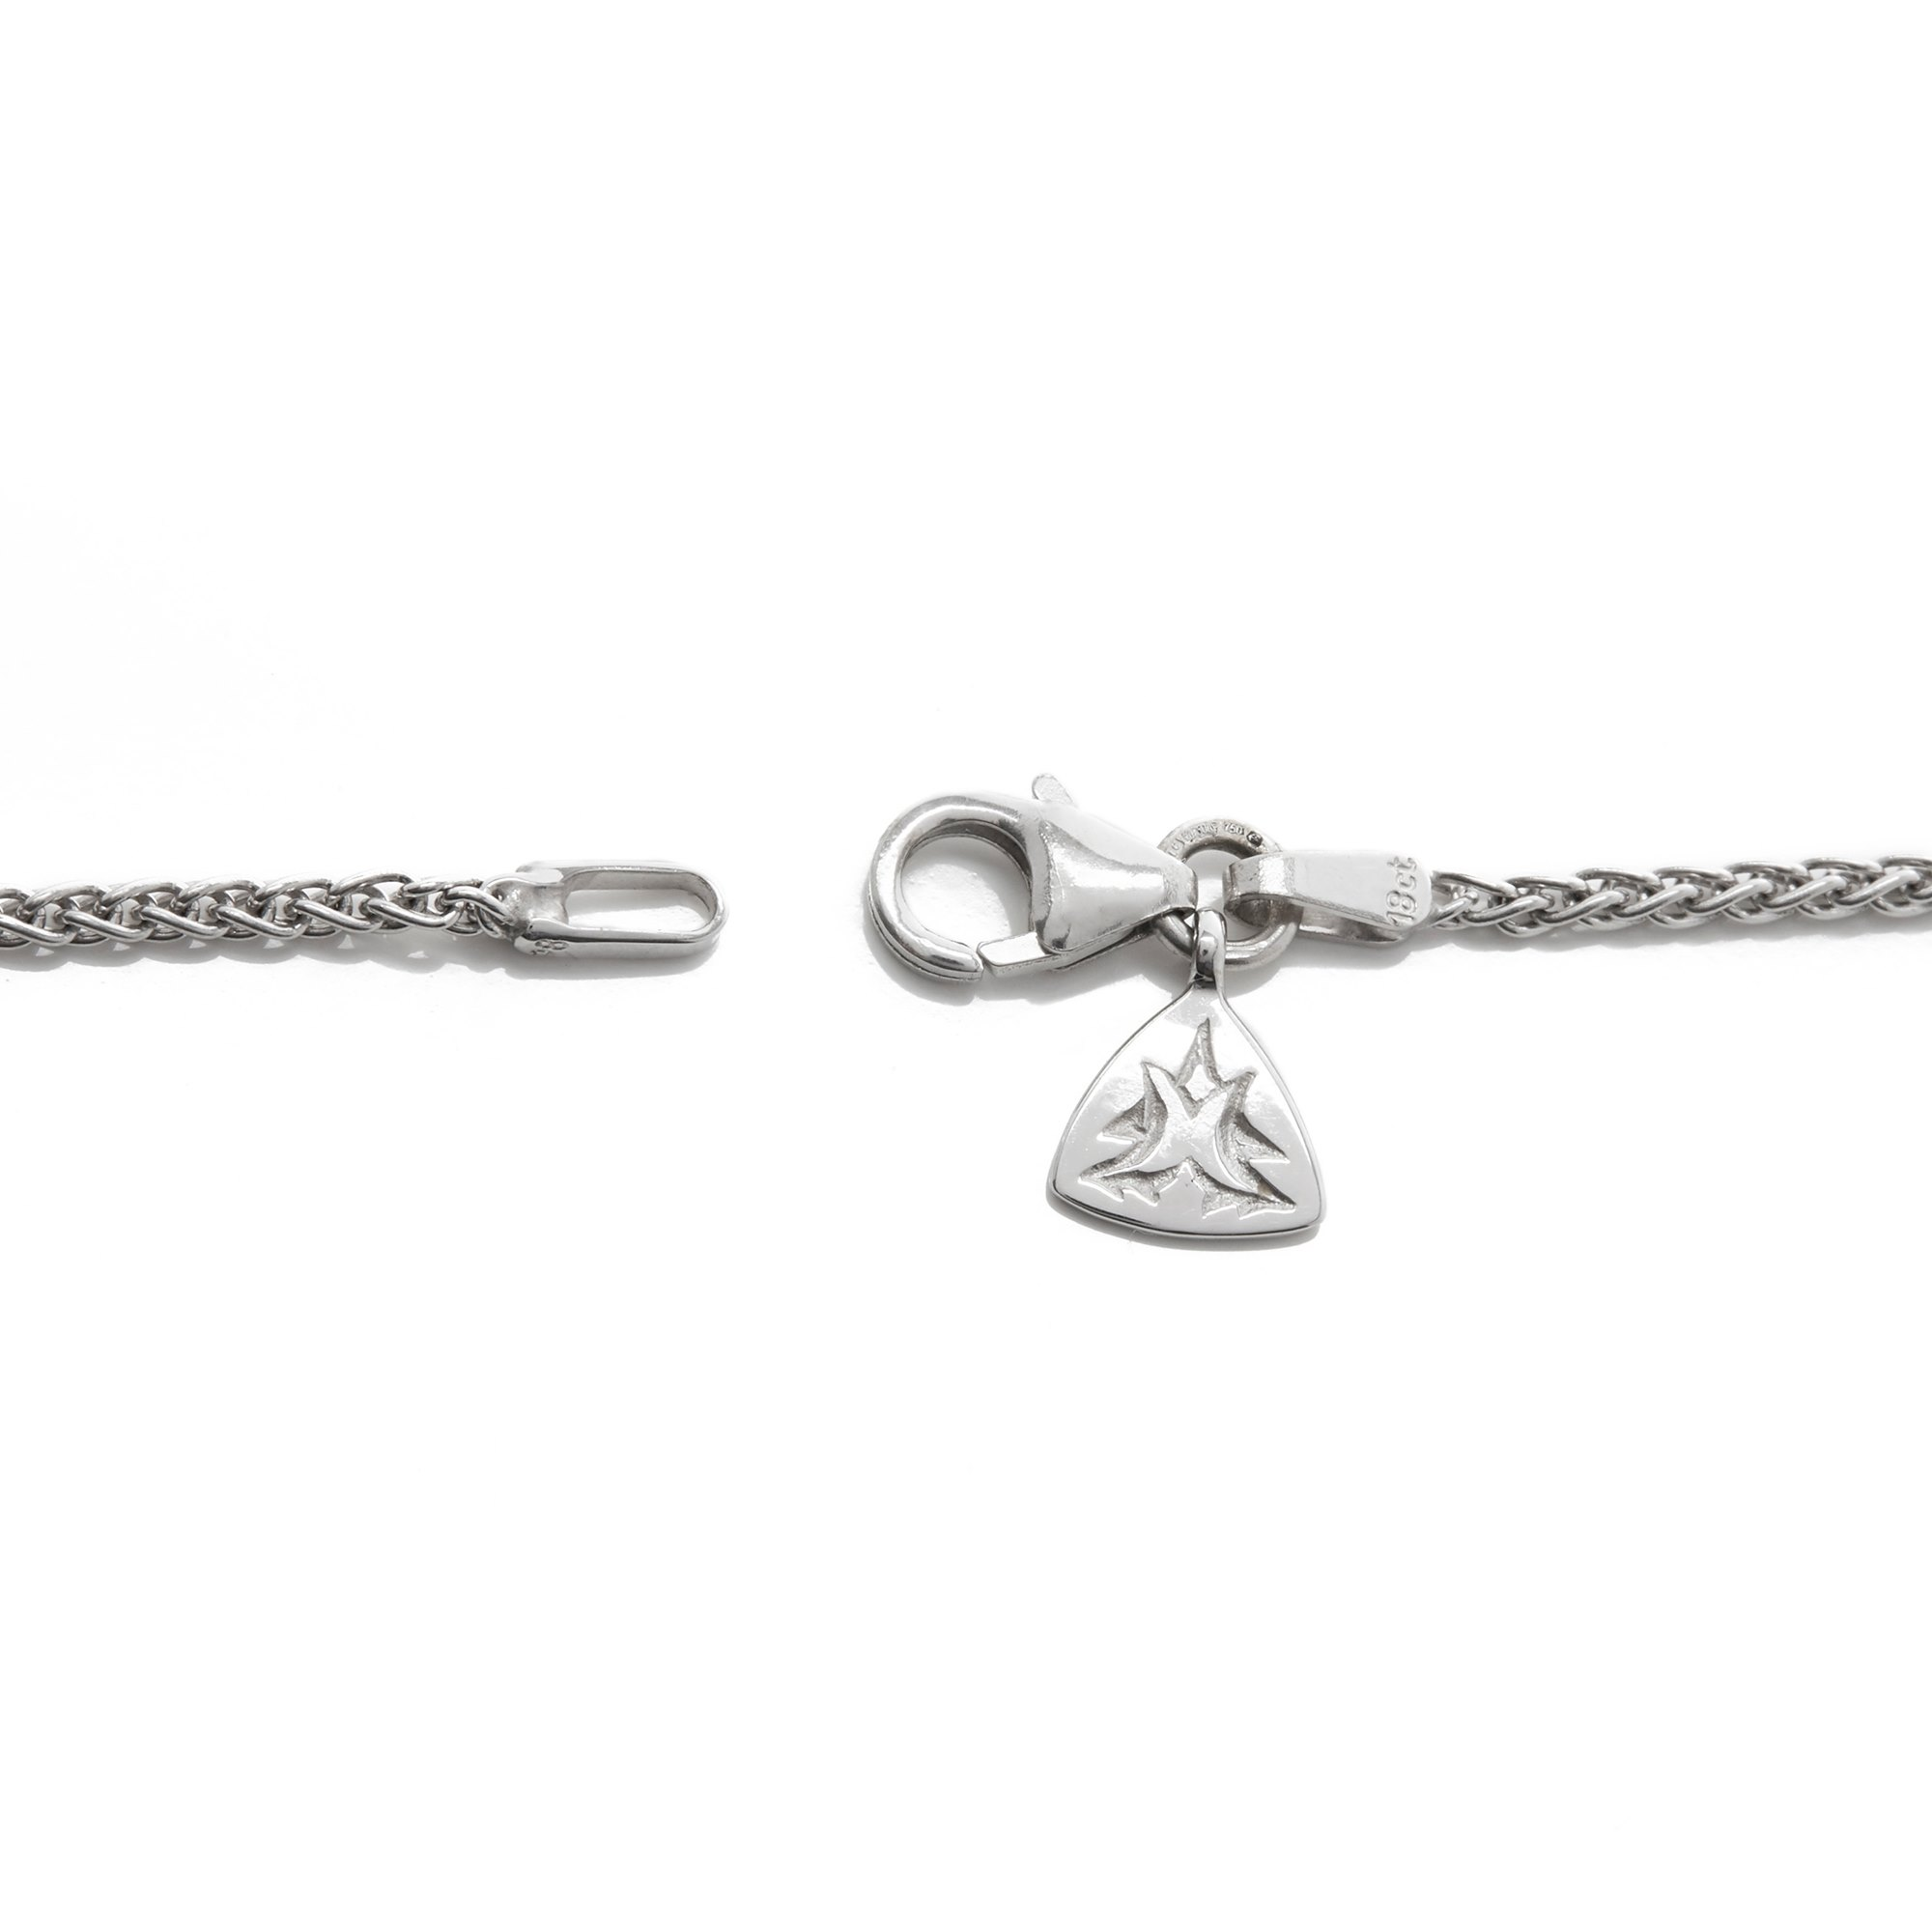 Stephen Webster 18k White Gold Thorn Necklet with Spiga Chain